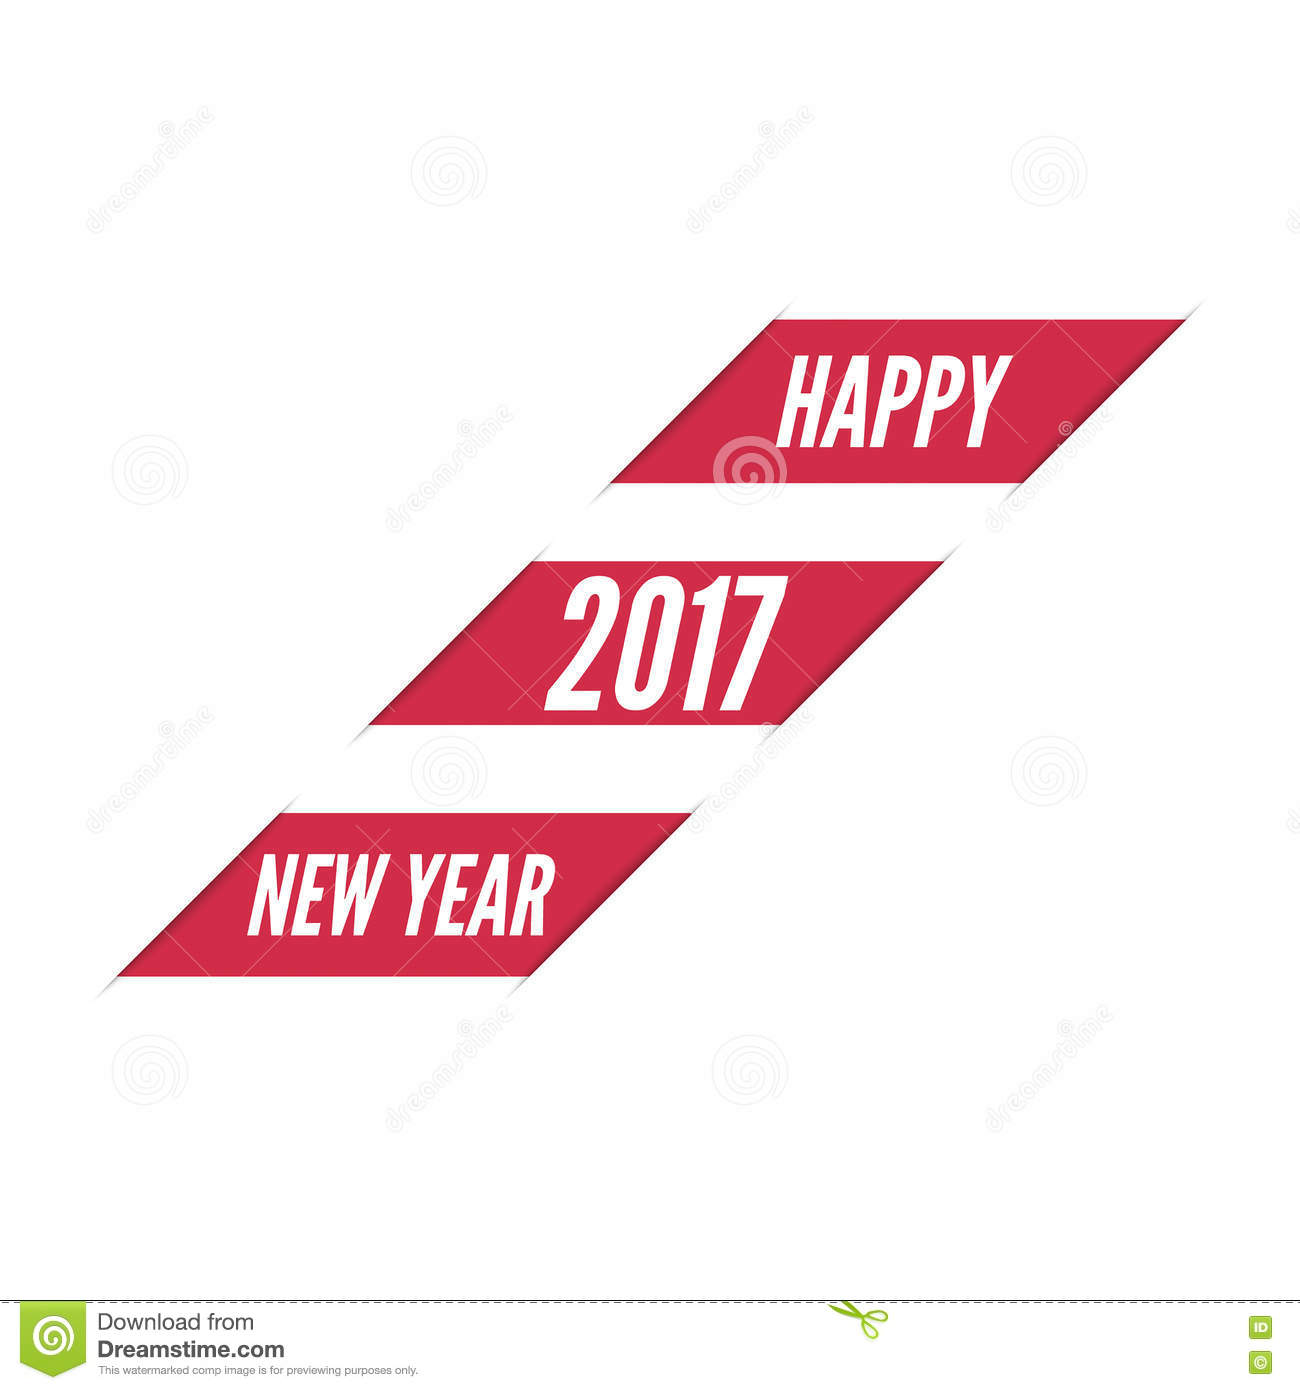 Happy new year 2017 theme stock vector. Image of ...